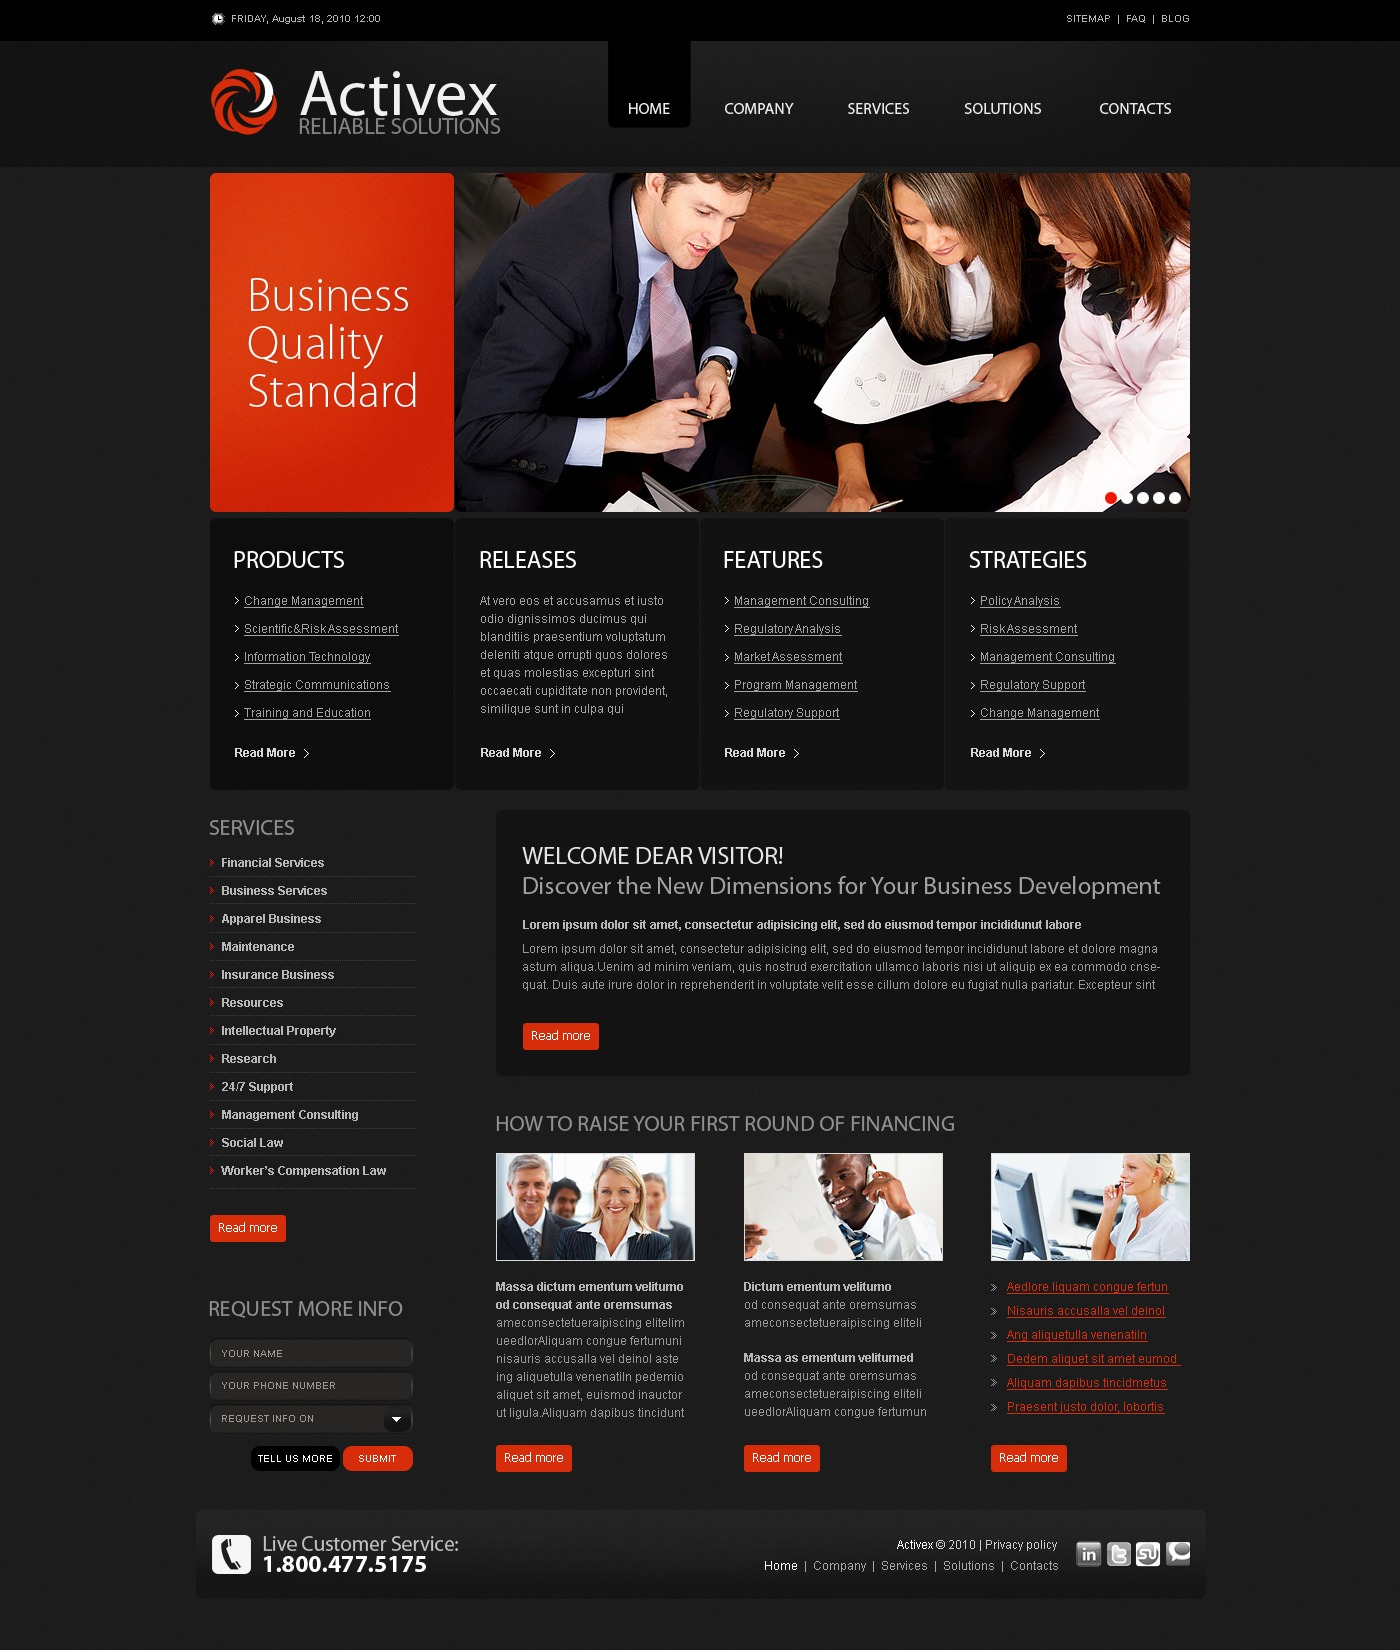 The Activex Business Company PSD Design 54349, one of the best PSD templates of its kind (business, flash 8, wide), also known as activex business company PSD template, corporate solutions PSD template, innovations PSD template, contacts PSD template, service PSD template, support PSD template, information dealer PSD template, stocks PSD template, team PSD template, success PSD template, money PSD template, marketing PSD template, director PSD template, manager PSD template, analytics PSD template, planning PSD template, limited PSD template, office PSD template, sales and related with activex business company, corporate solutions, innovations, contacts, service, support, information dealer, stocks, team, success, money, marketing, director, manager, analytics, planning, limited, office, sales, etc.